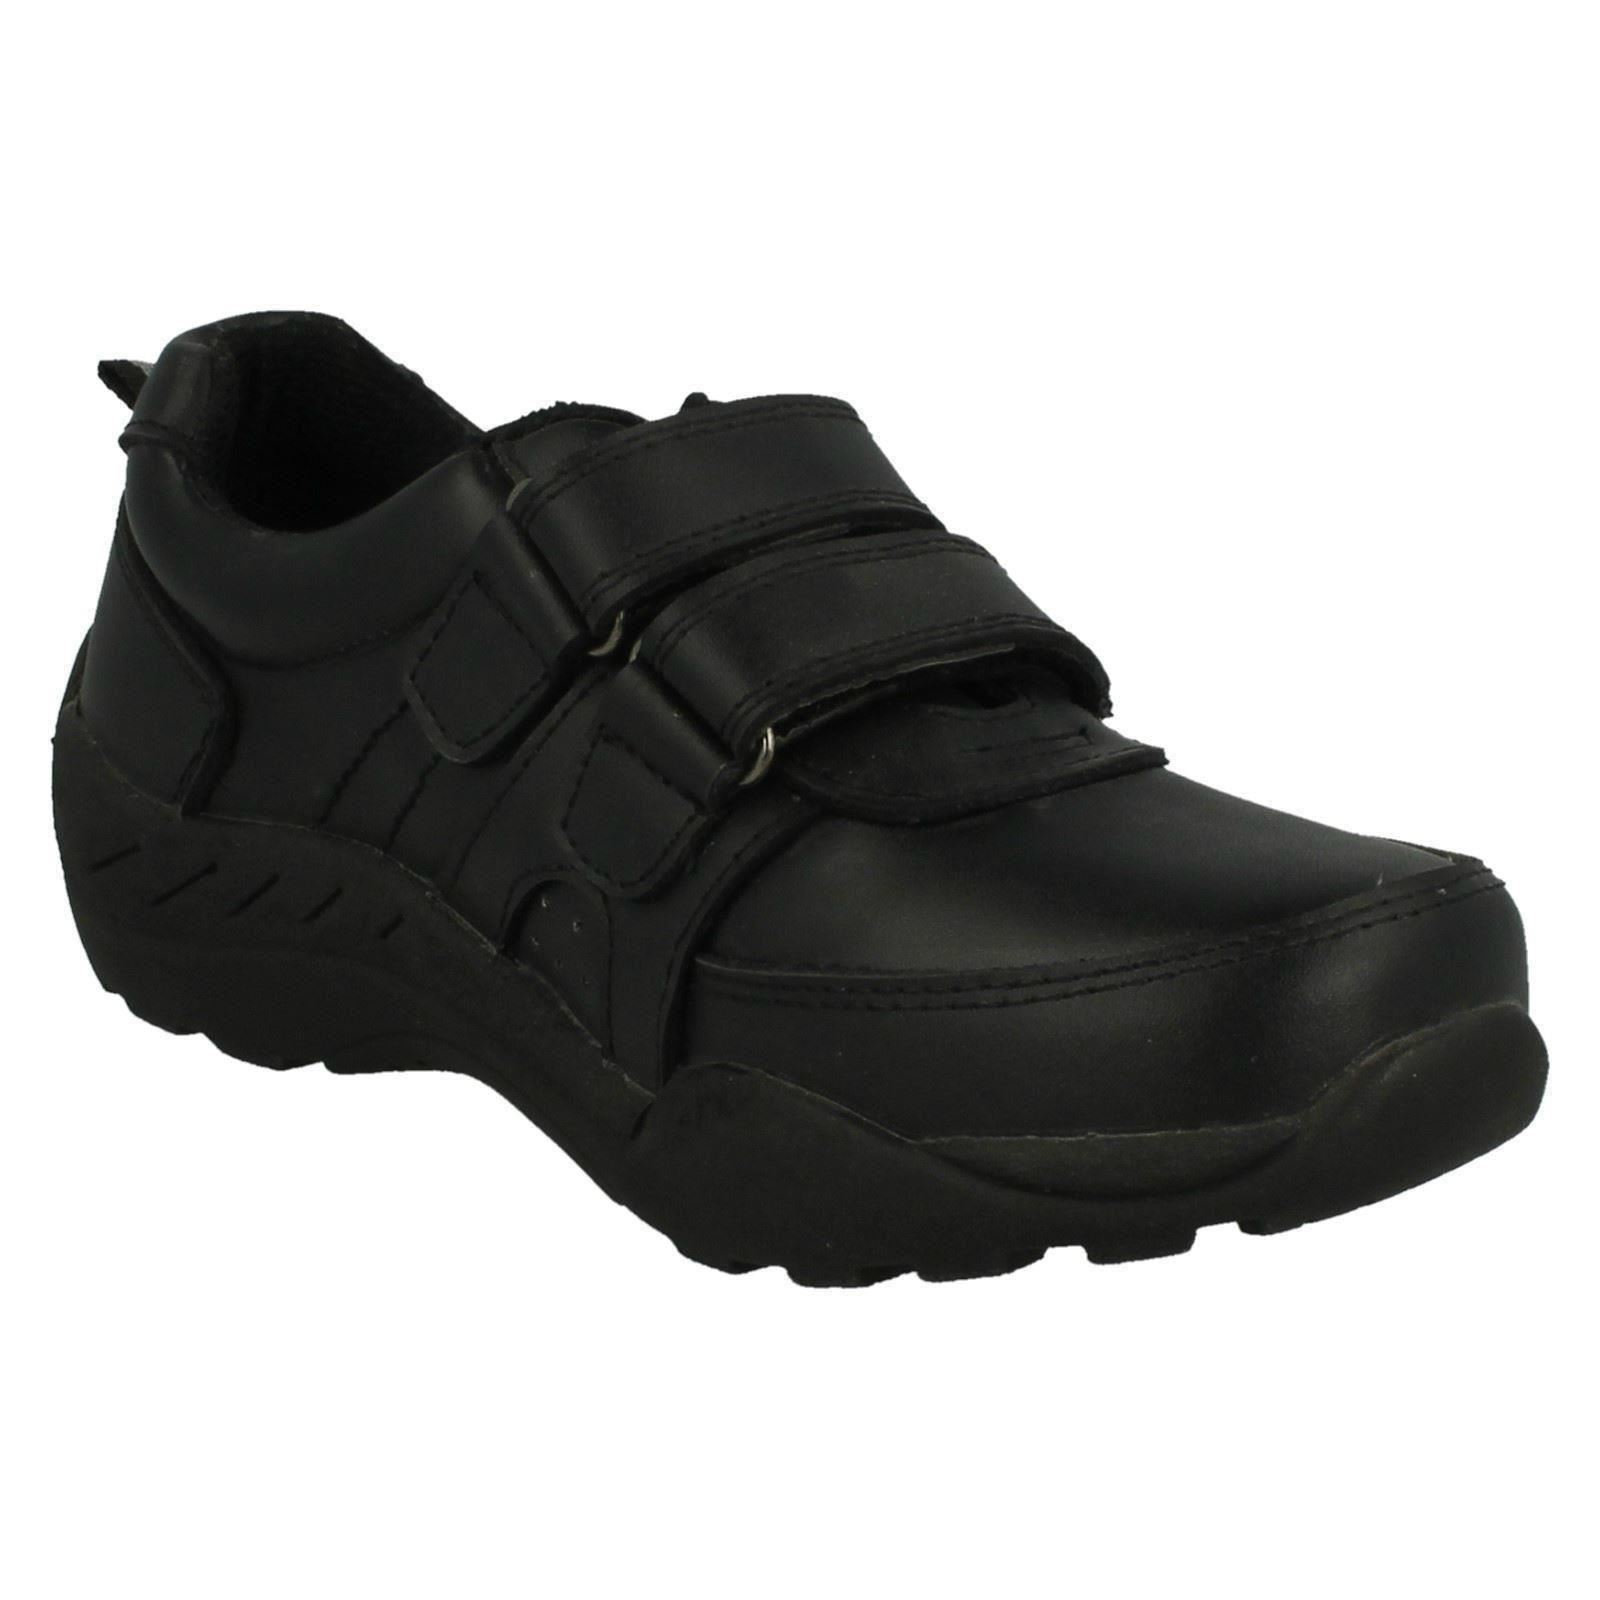 Boys Red Tag Double Strap Leather School Shoes